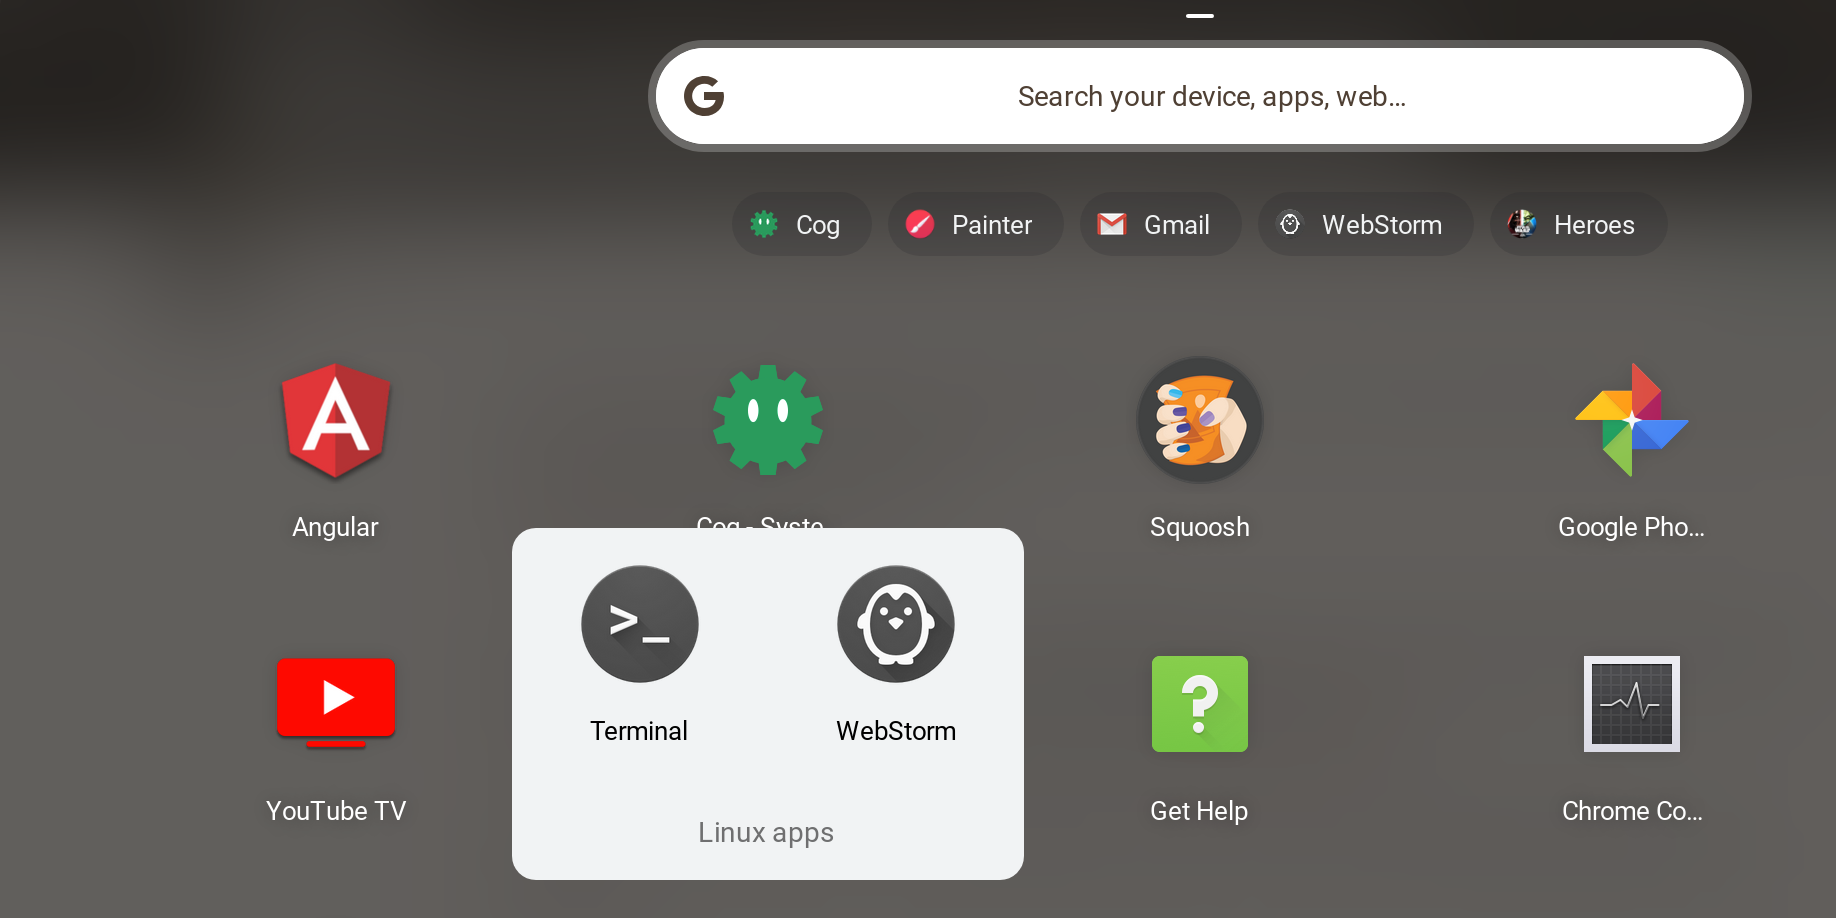 Linux apps directory in Chrome OS Launcher